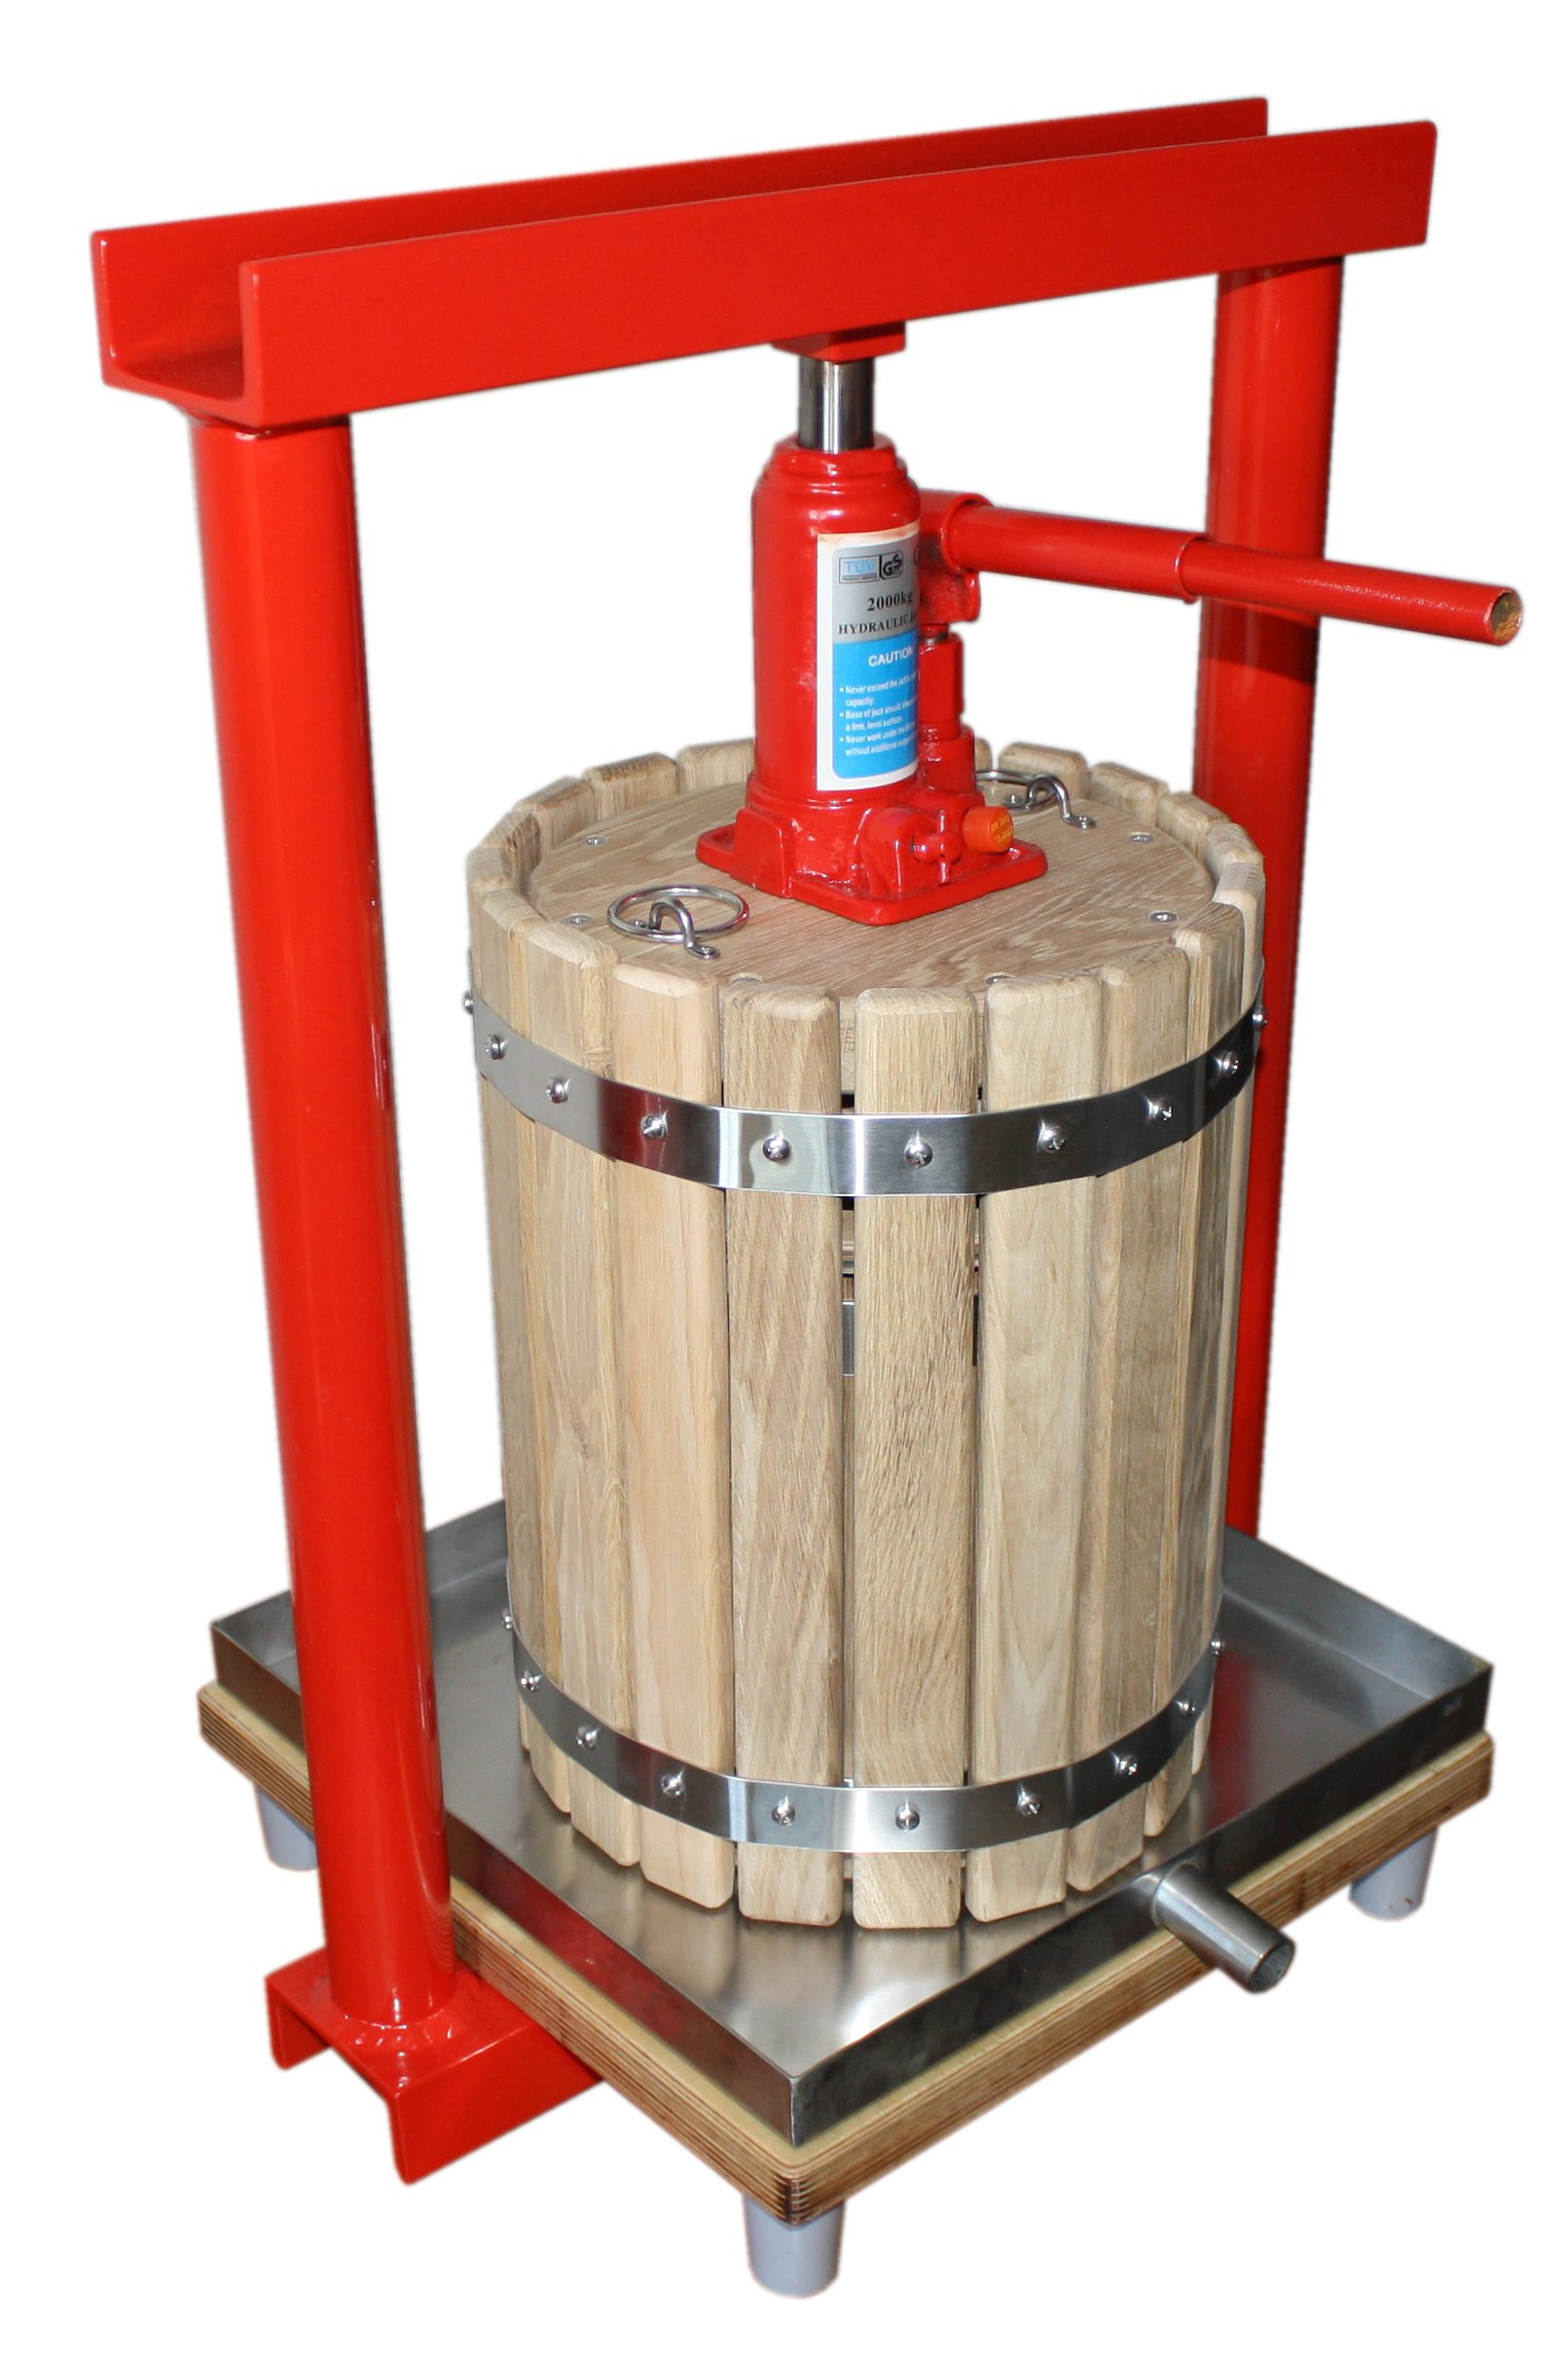 Hydraulic press GBP-12 - juicer for apples, grapes, berries, fruit, wine, cider